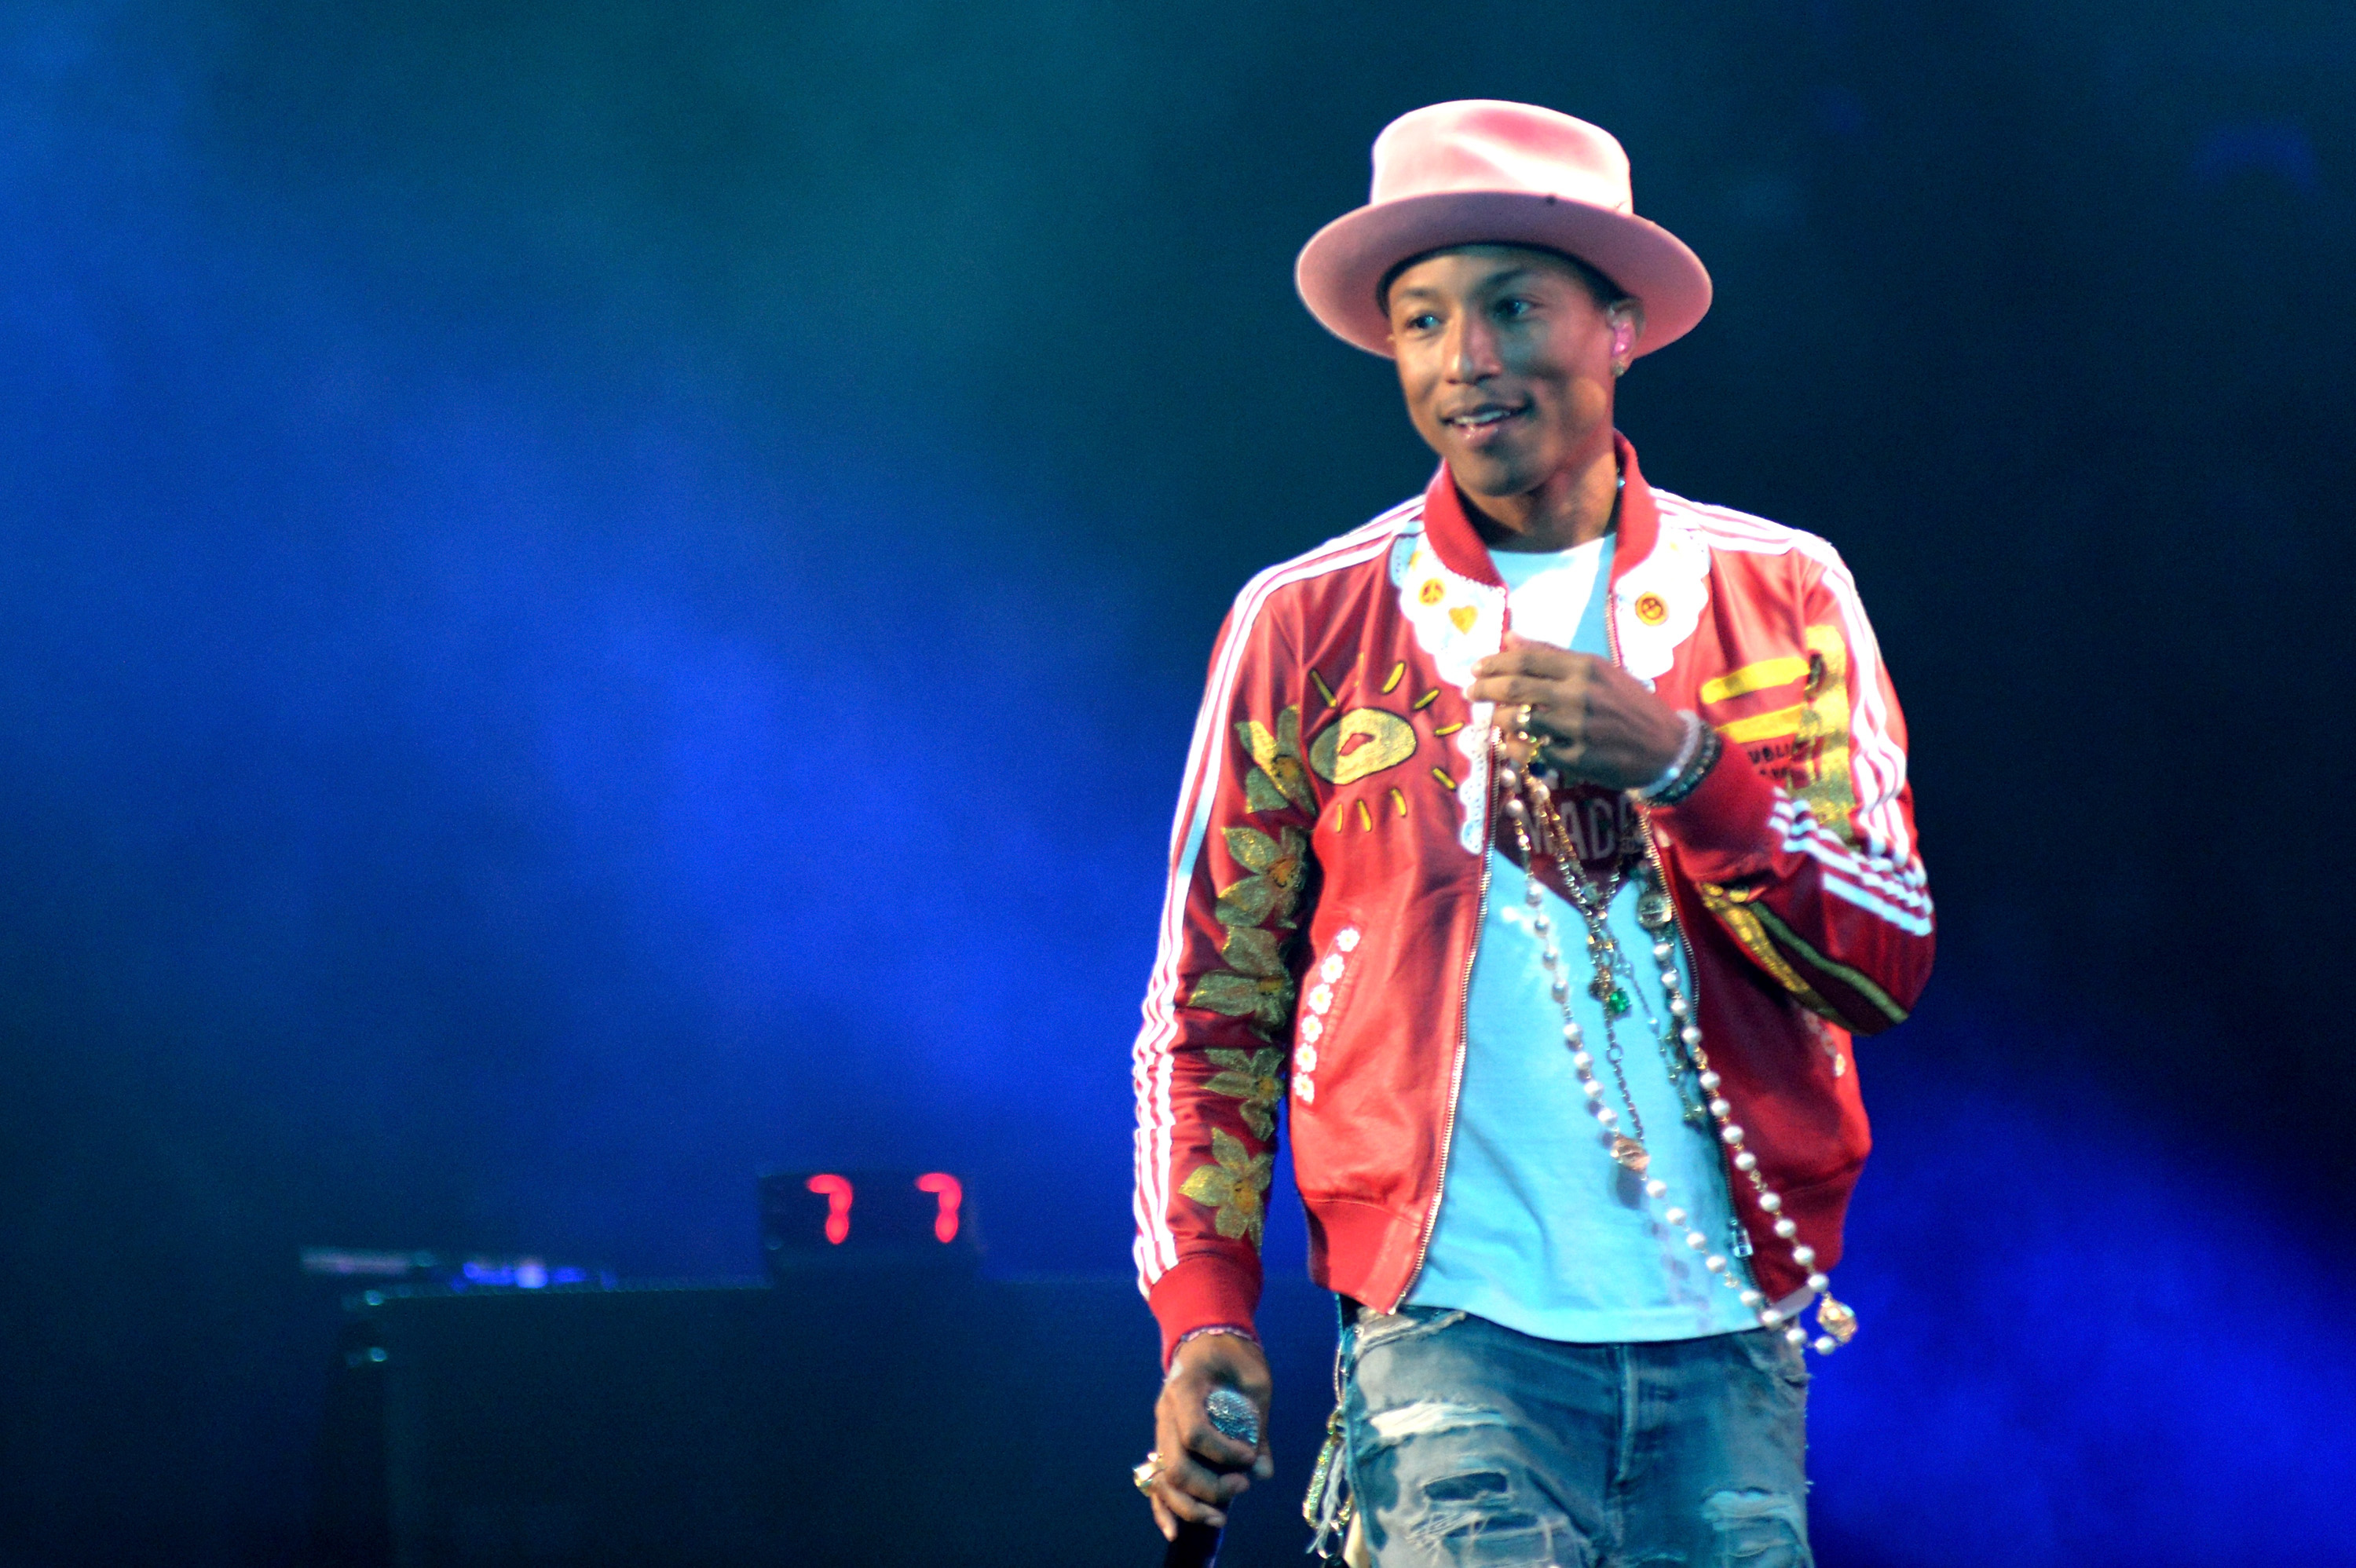 TAMPA, FL - DECEMBER 22:  Pharrell Williams performs onstage during 93.3 FLZ's Jingle Ball 2014 at Amalie Arena on December